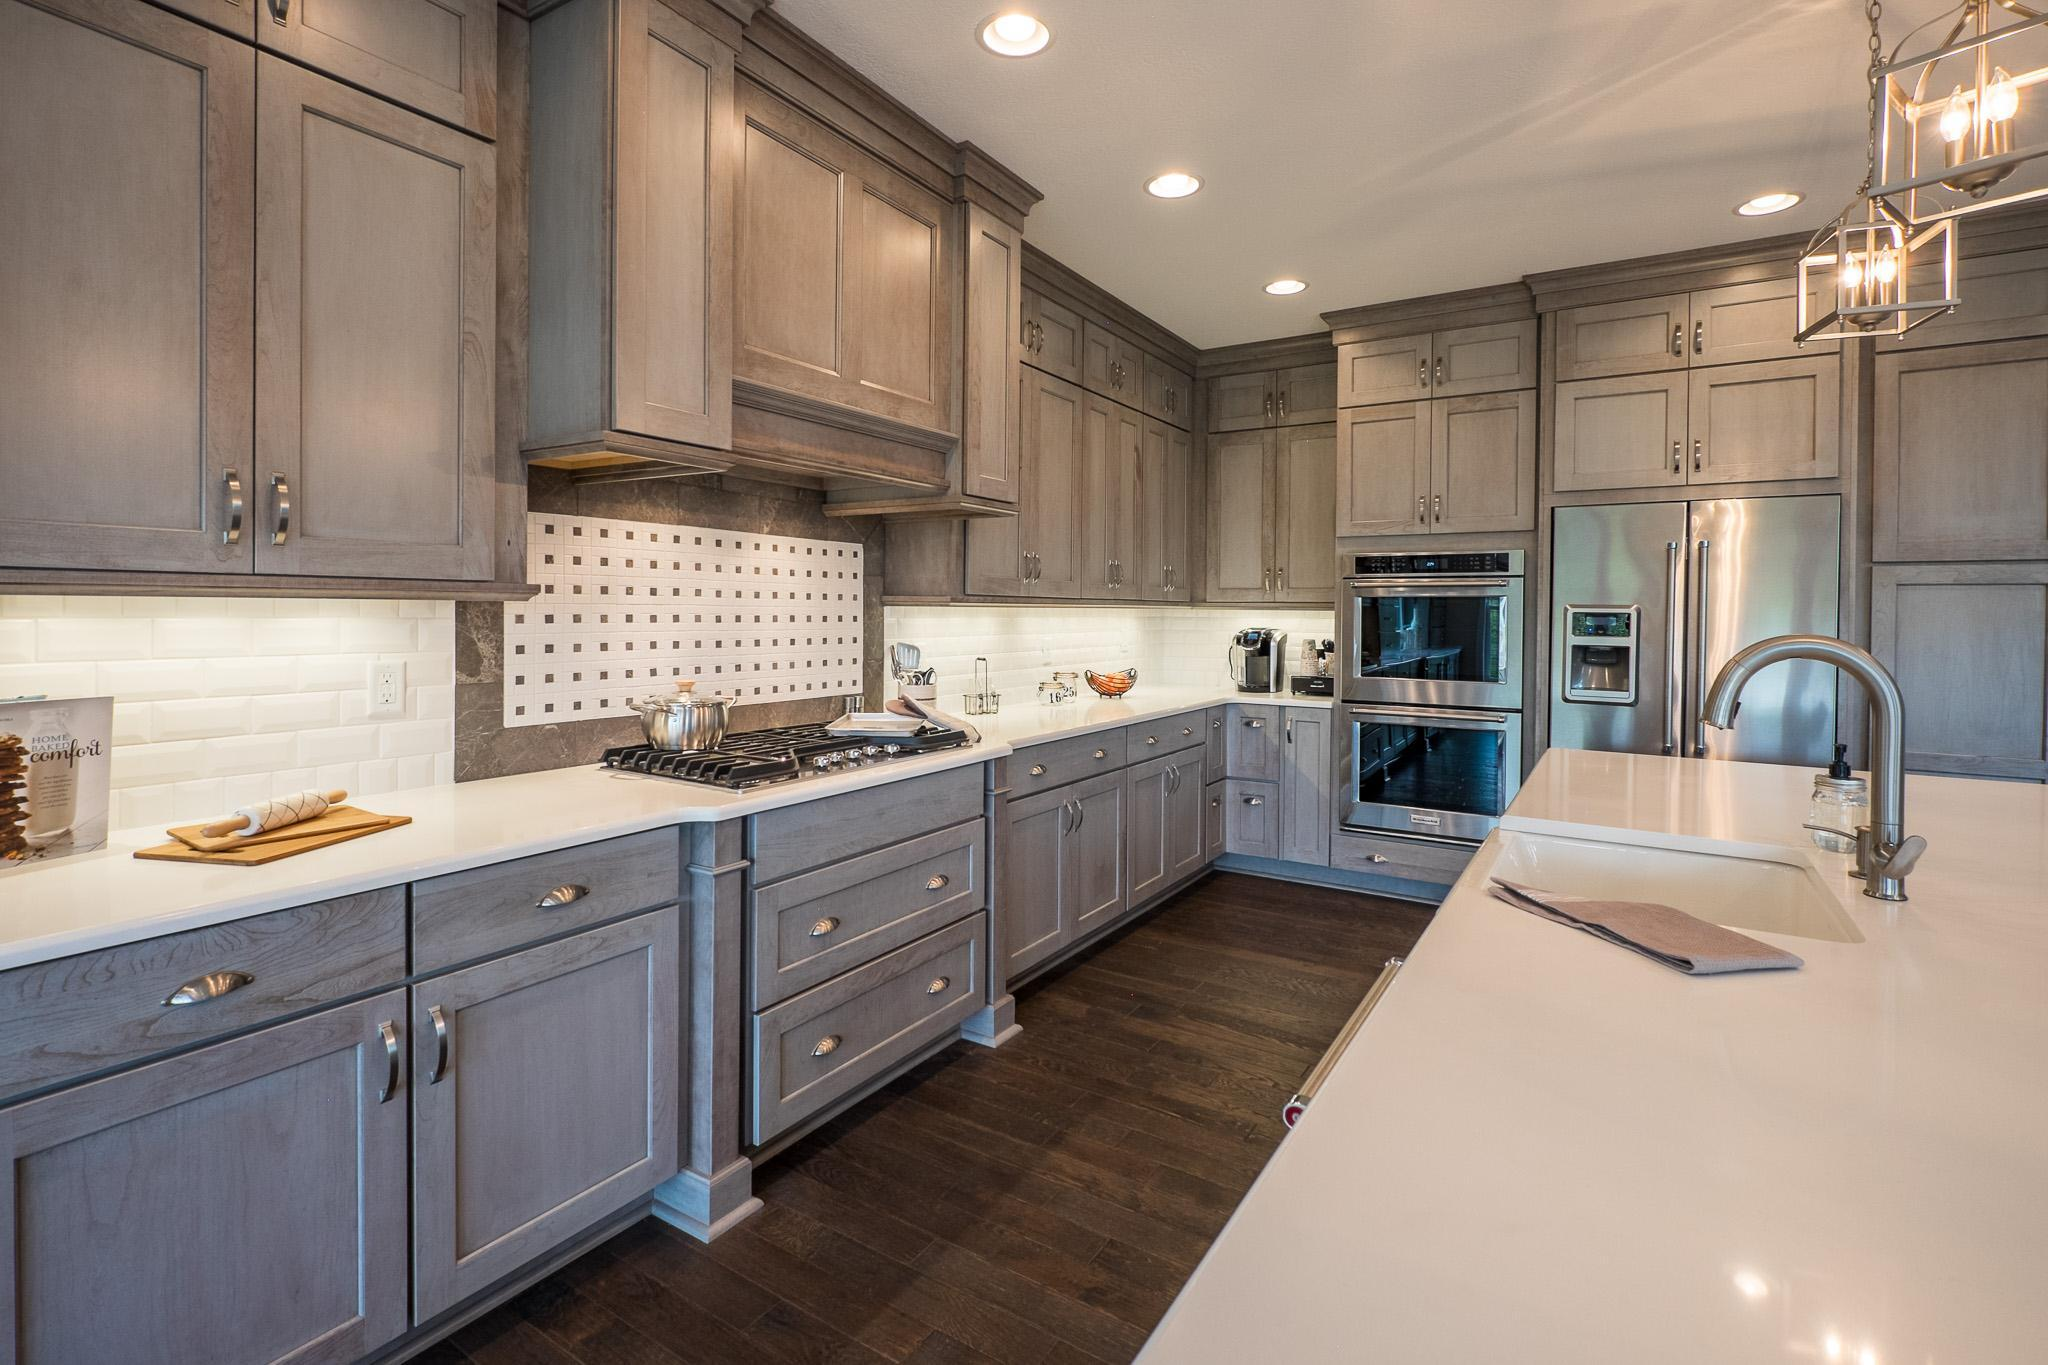 Kitchen featured in the Cambridge By Infinity Custom Homes in Pittsburgh, PA